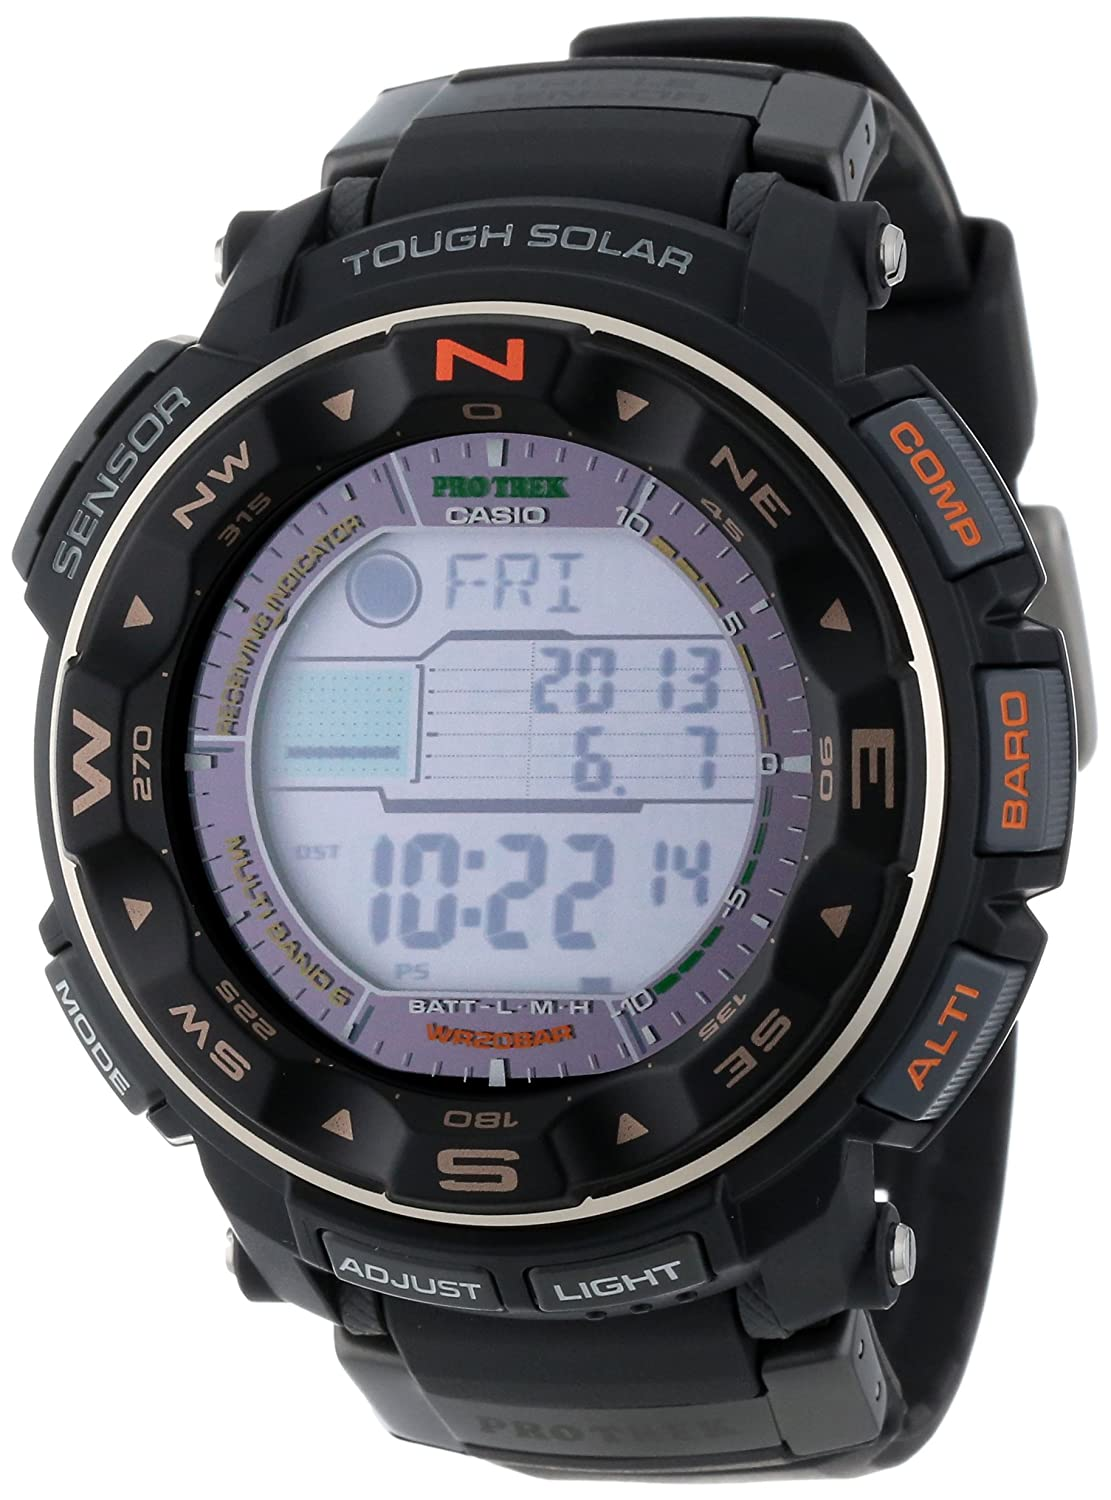 Casio PRW 2500R 1CR Tough Solar Digital Image 1